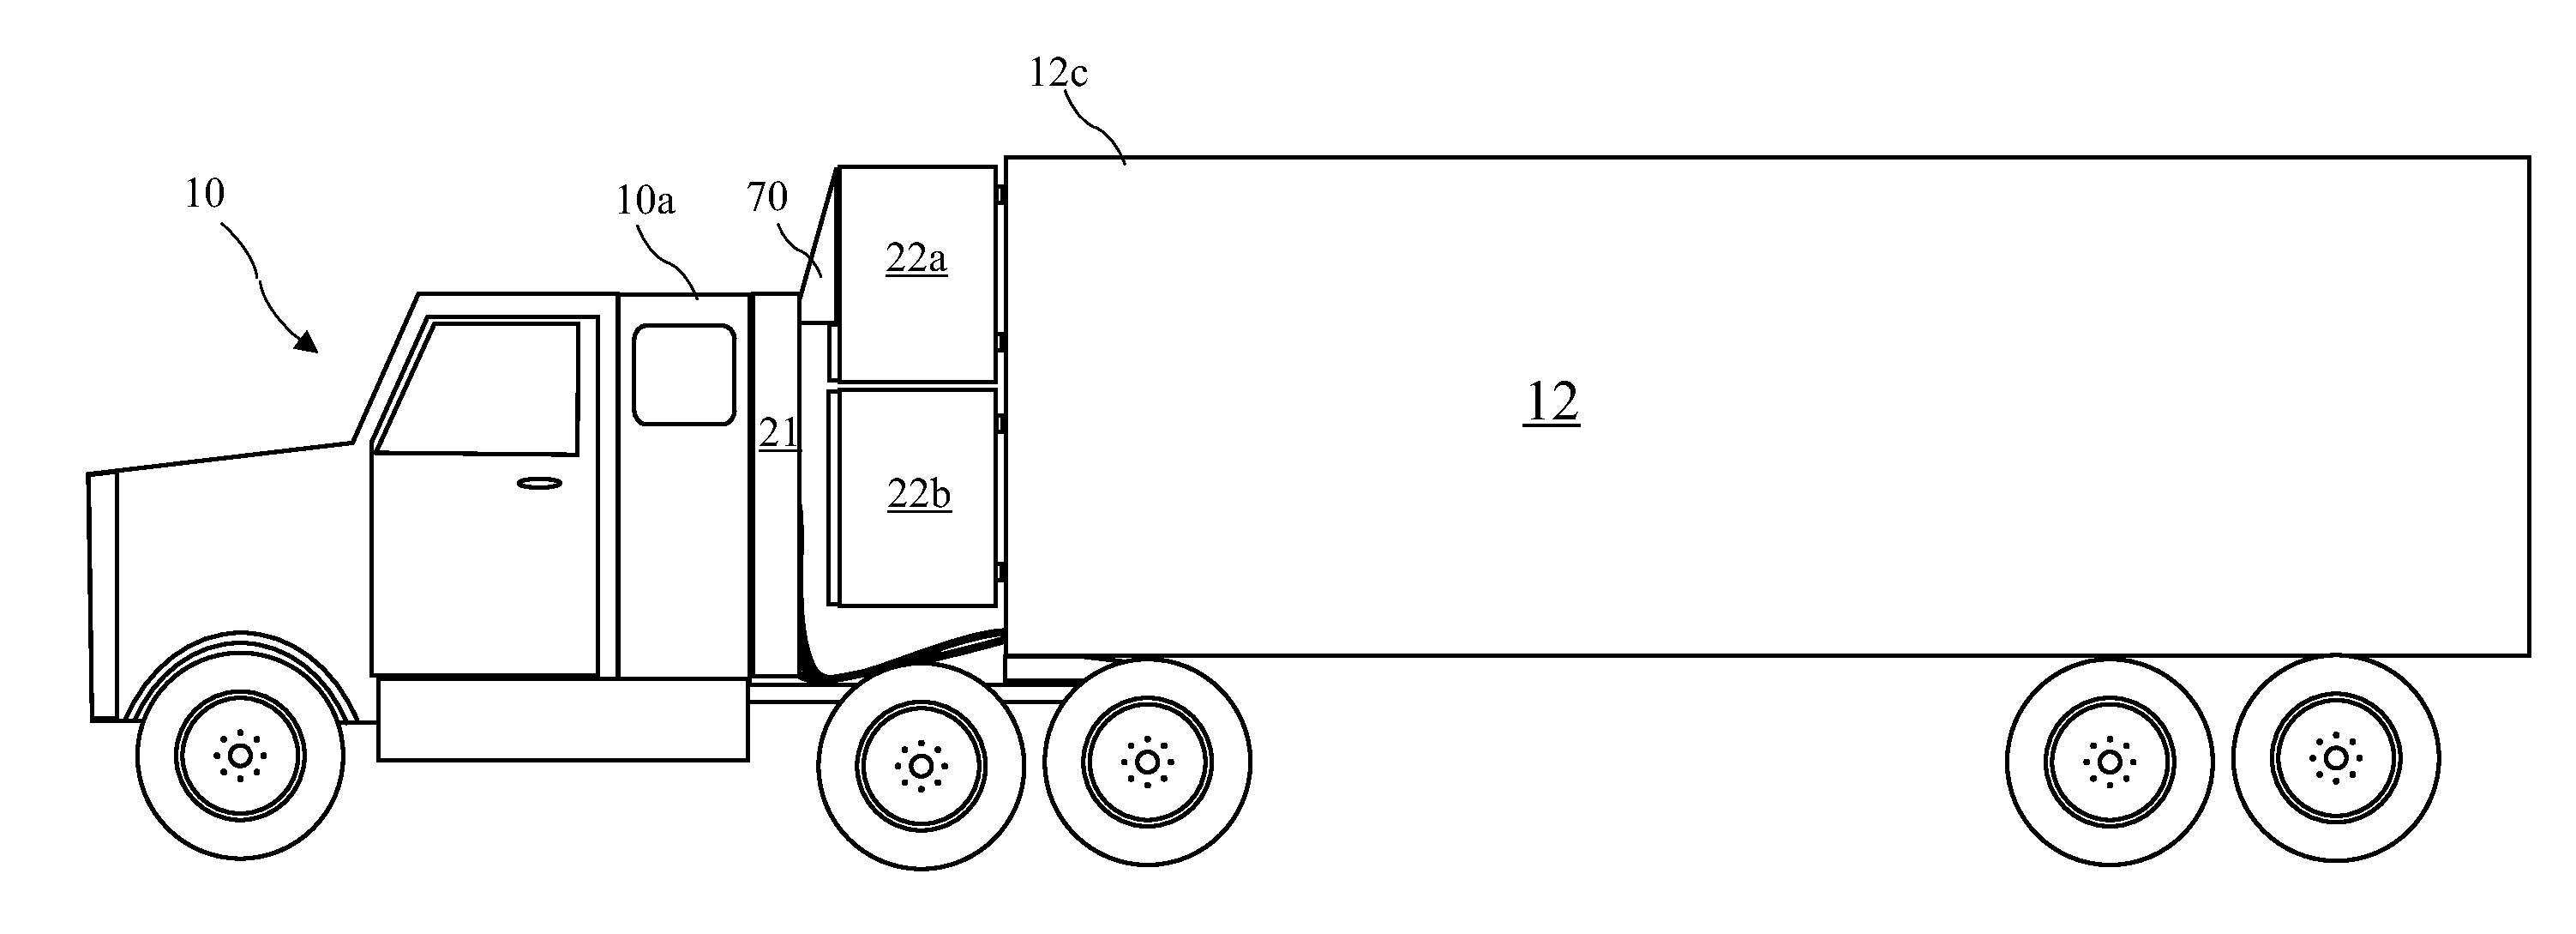 Semi Truck Inspection Diagram Tractor Trailer Drawing at Paintingvalley Of Semi Truck Inspection Diagram